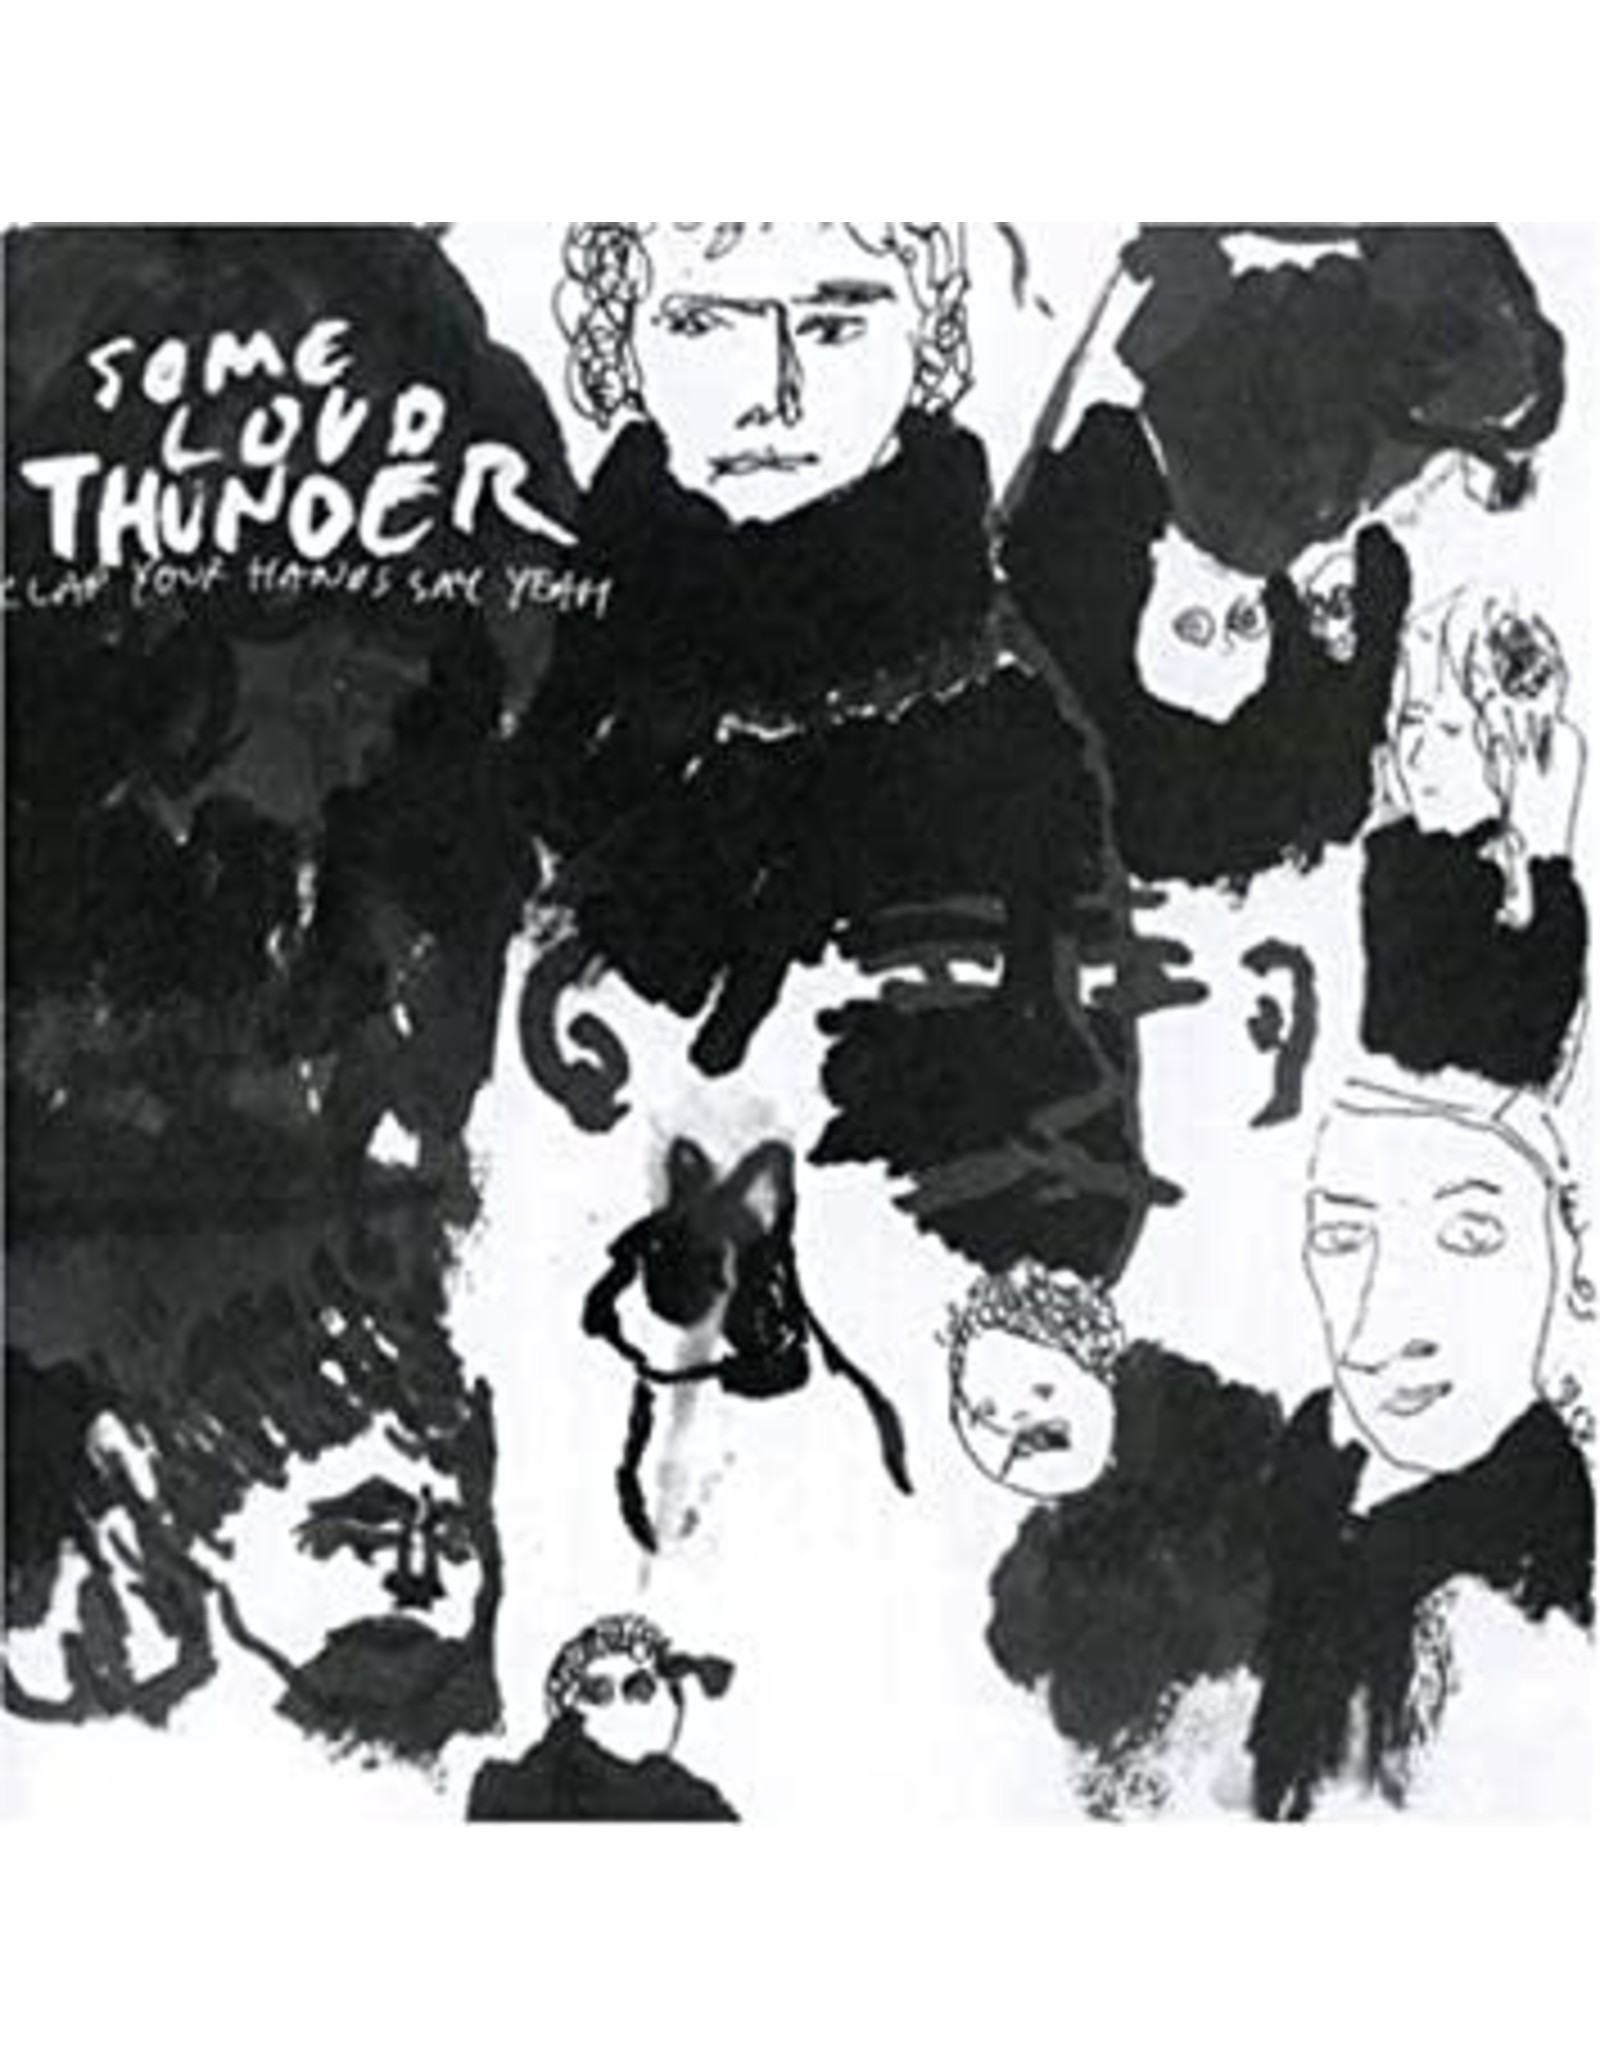 New Vinyl Clap Your Hands Say Yeah - Some Loud Thunder LP